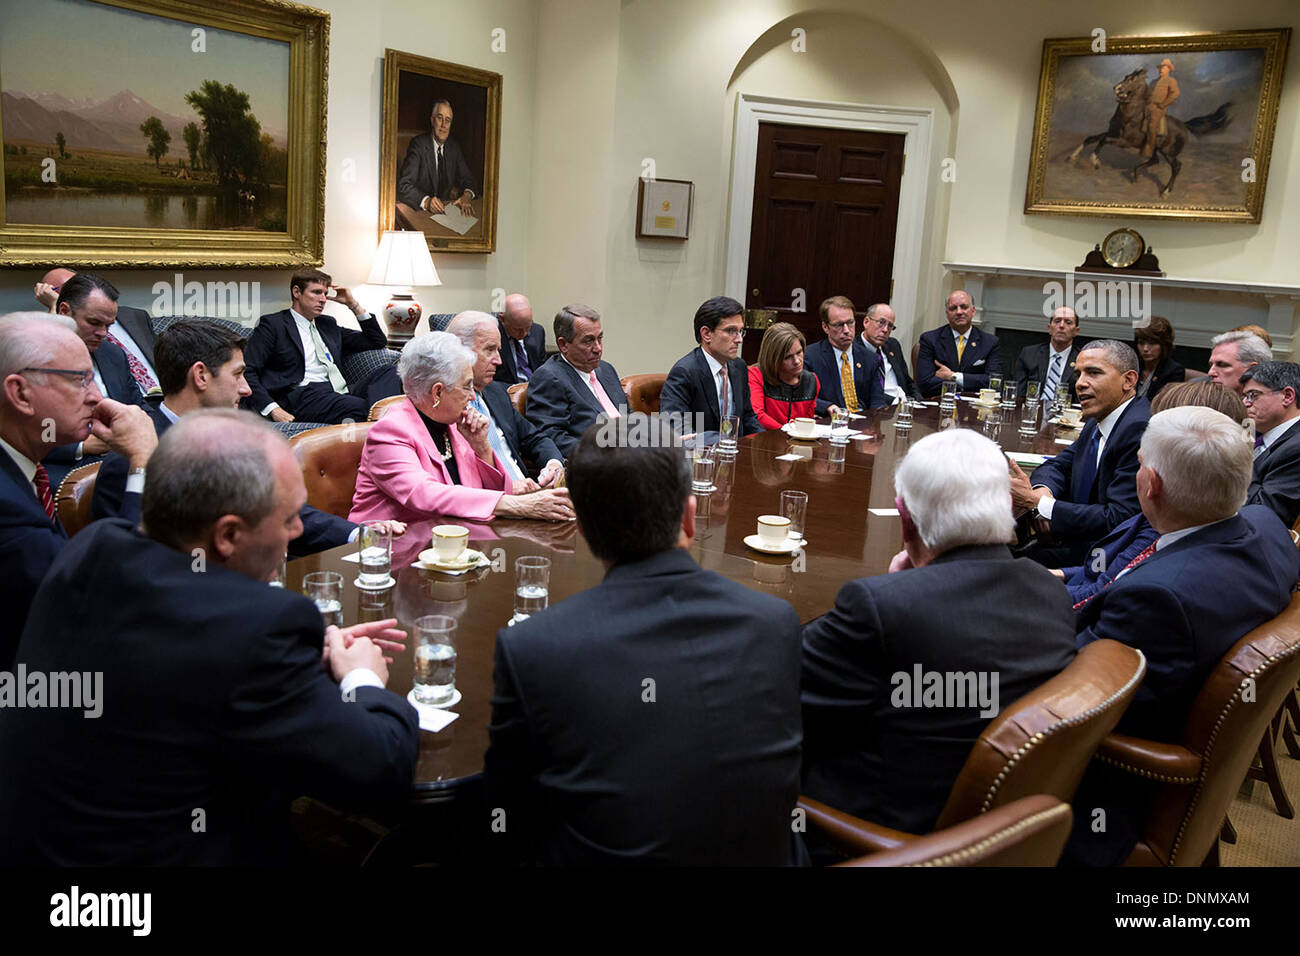 US President Barack Obama talks with the House Republican leadership to discuss the federal government shutdown and debt ceiling deadline in the Roosevelt Room of the White House October 10, 2013 in Washington, DC. - Stock Image